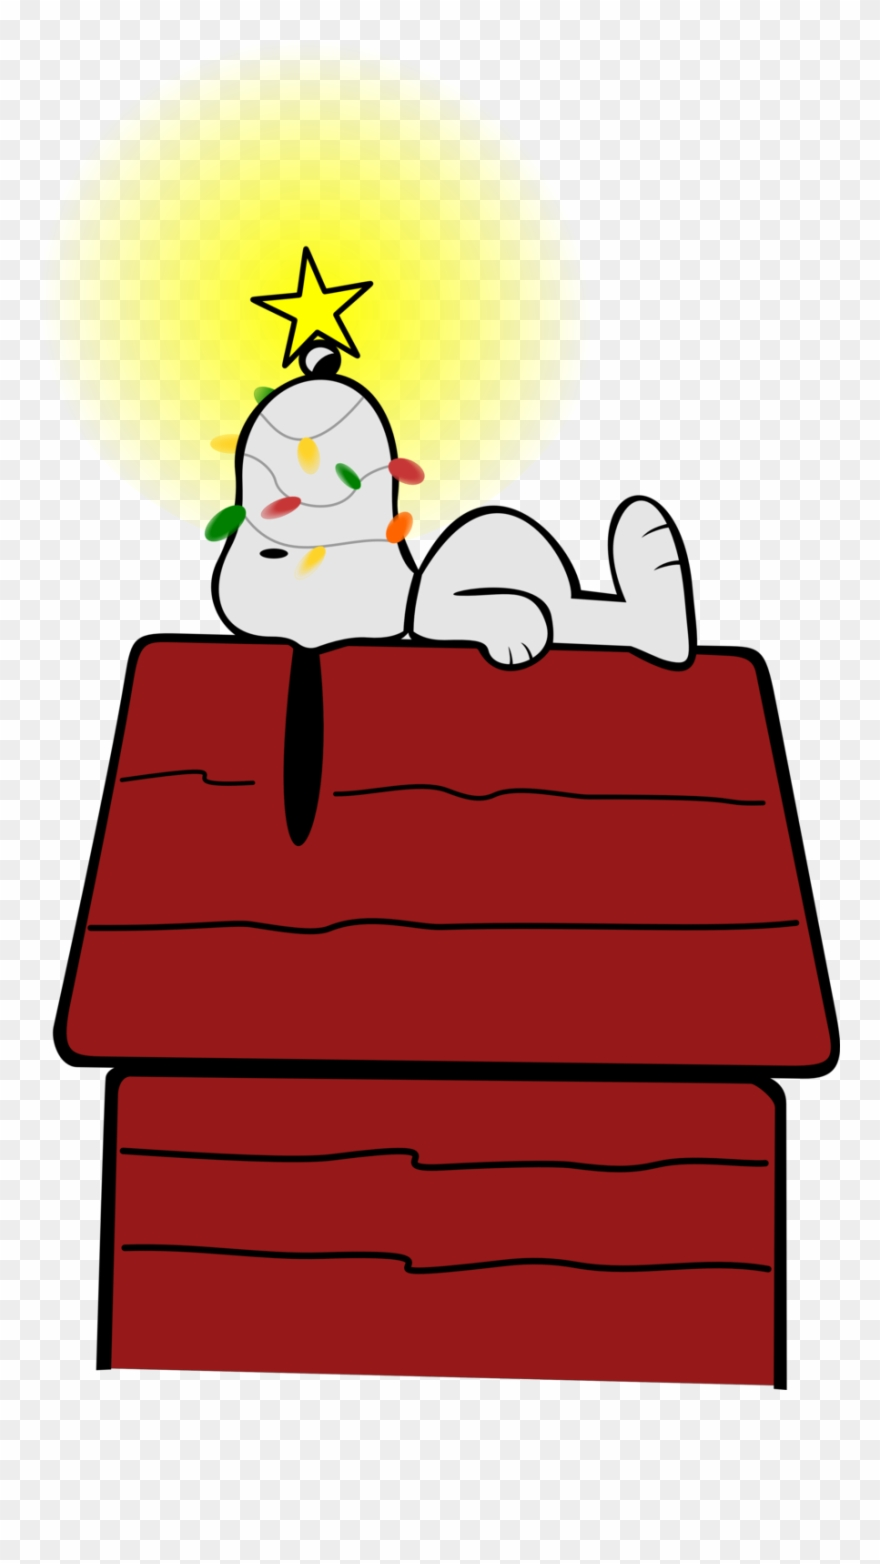 hight resolution of snoopy on doghouse cookie jar 59 clip art snoopy christmas png download